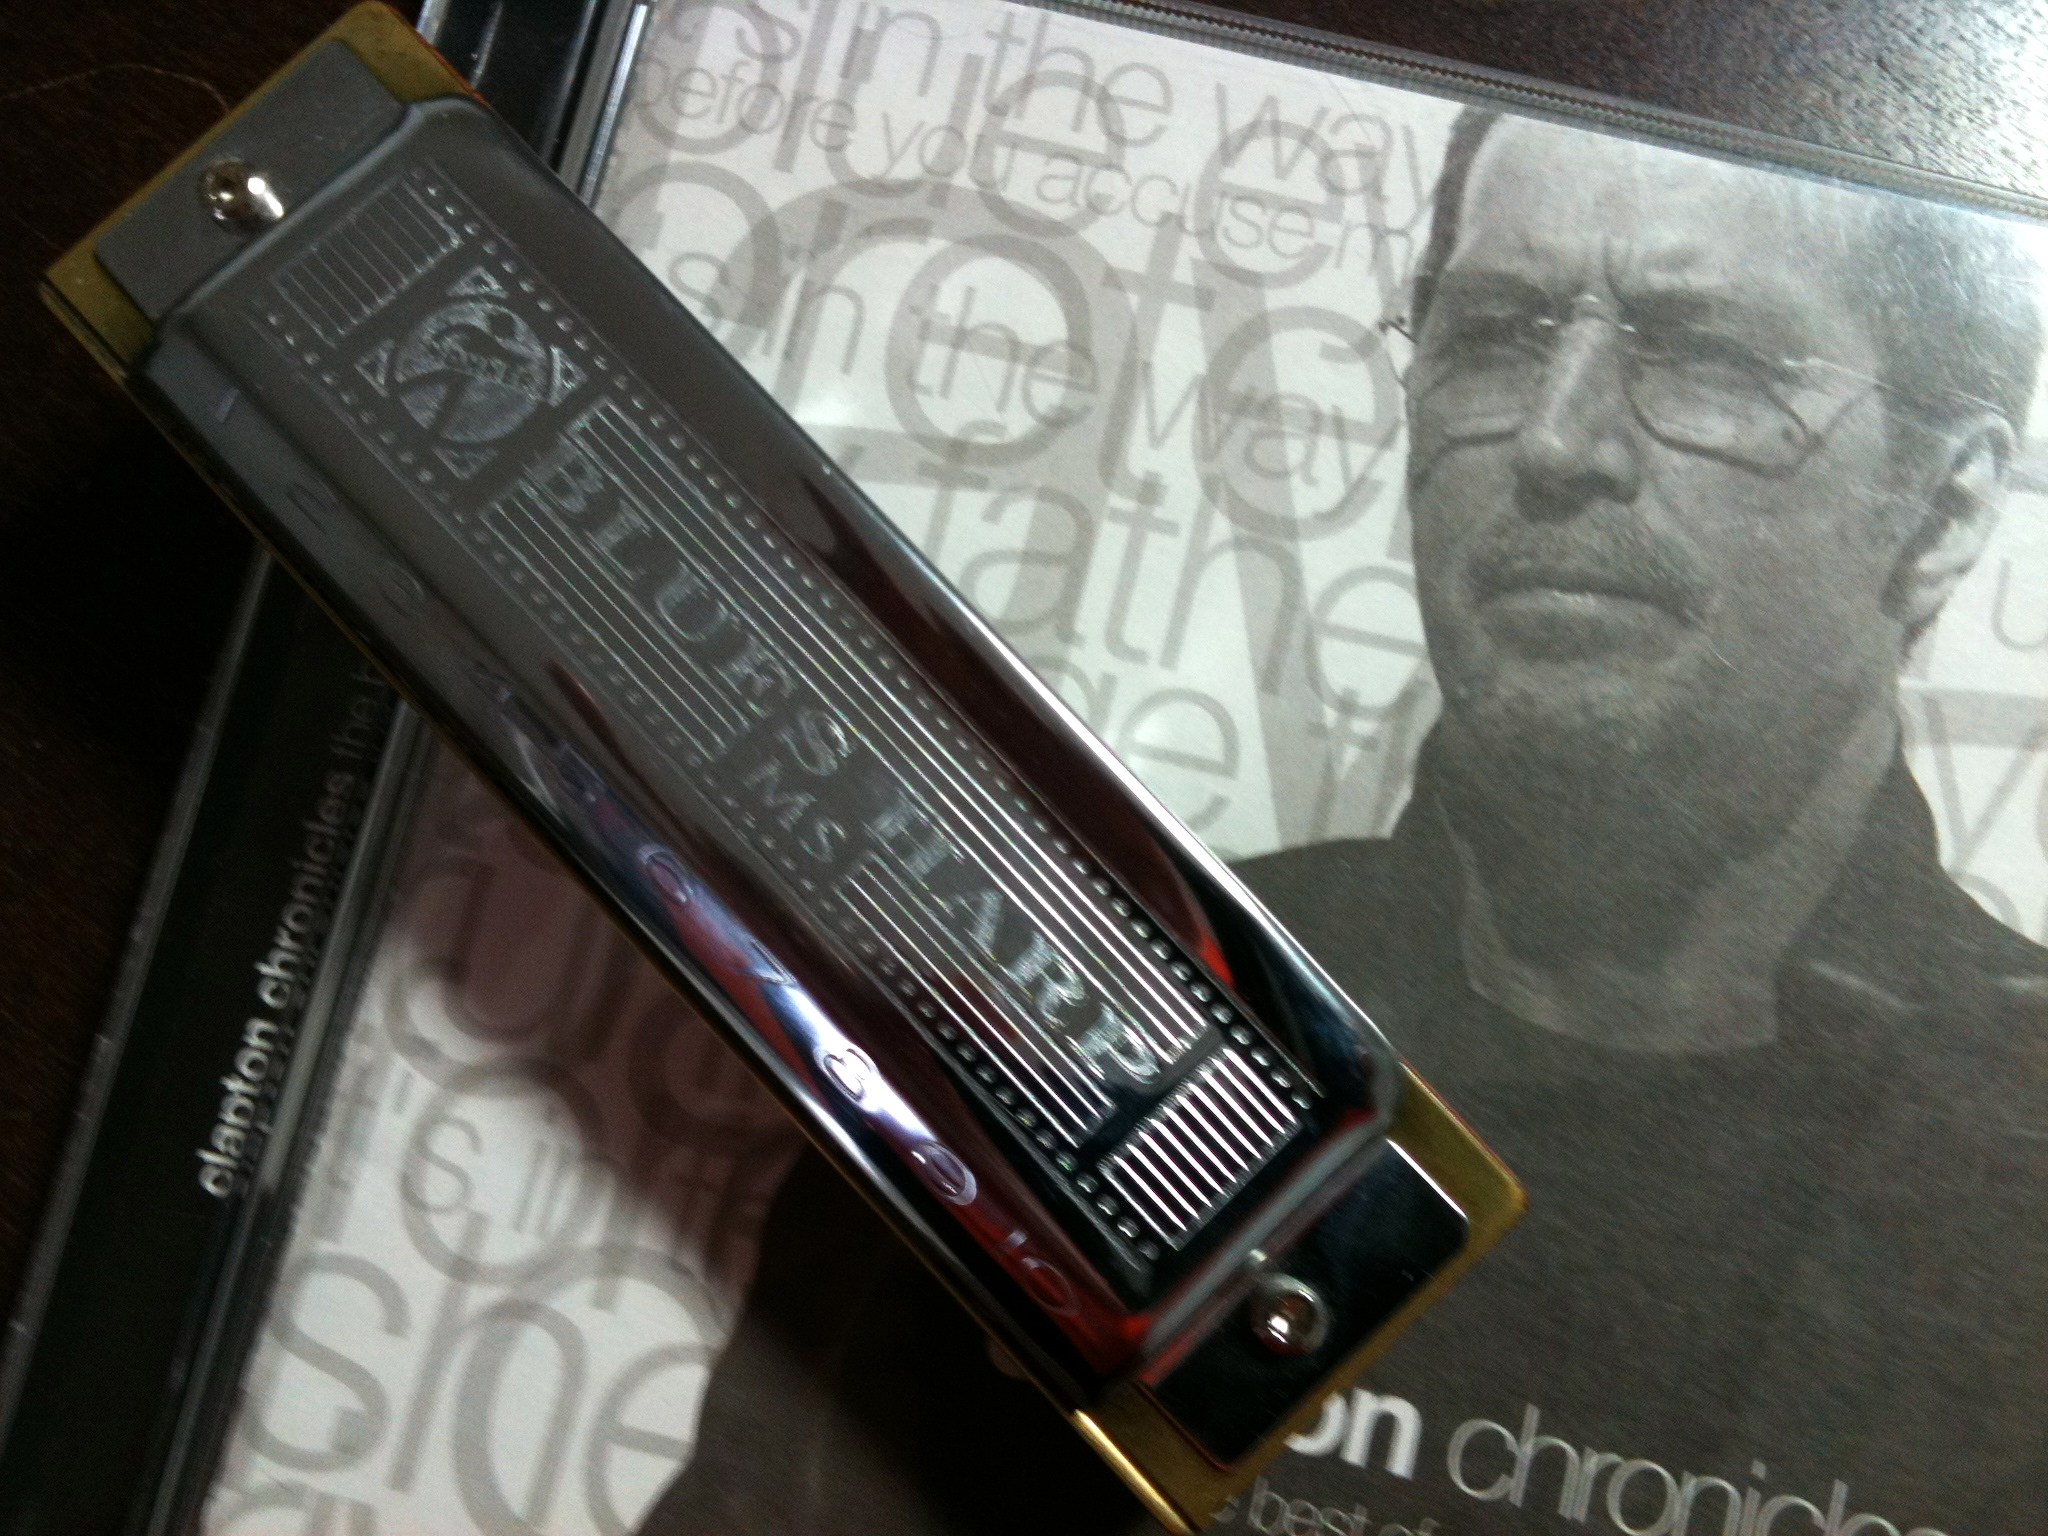 my blues harp and clapton chronicles